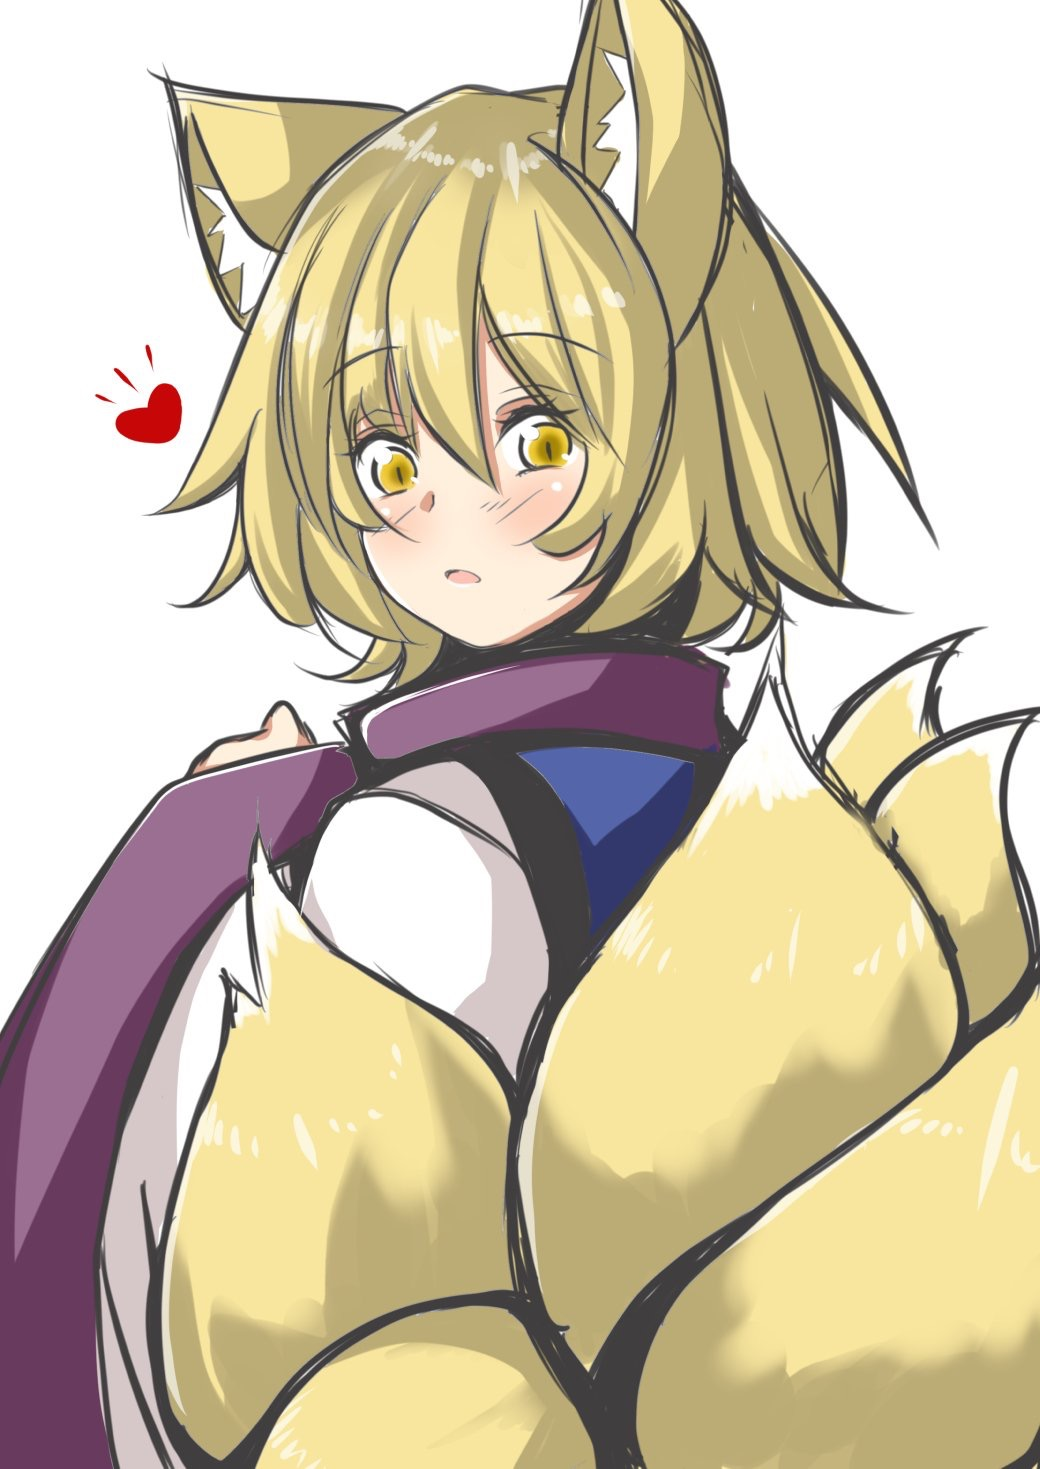 1girl animal_ear_fluff animal_ears blonde_hair blush eyebrows_visible_through_hair fox_ears fox_tail from_behind heart highres kitsune kyuubi looking_at_viewer looking_back multiple_tails no_hat no_headwear open_mouth simple_background slit_pupils solo sunaguma tail touhou wide_sleeves yakumo_ran yellow_eyes